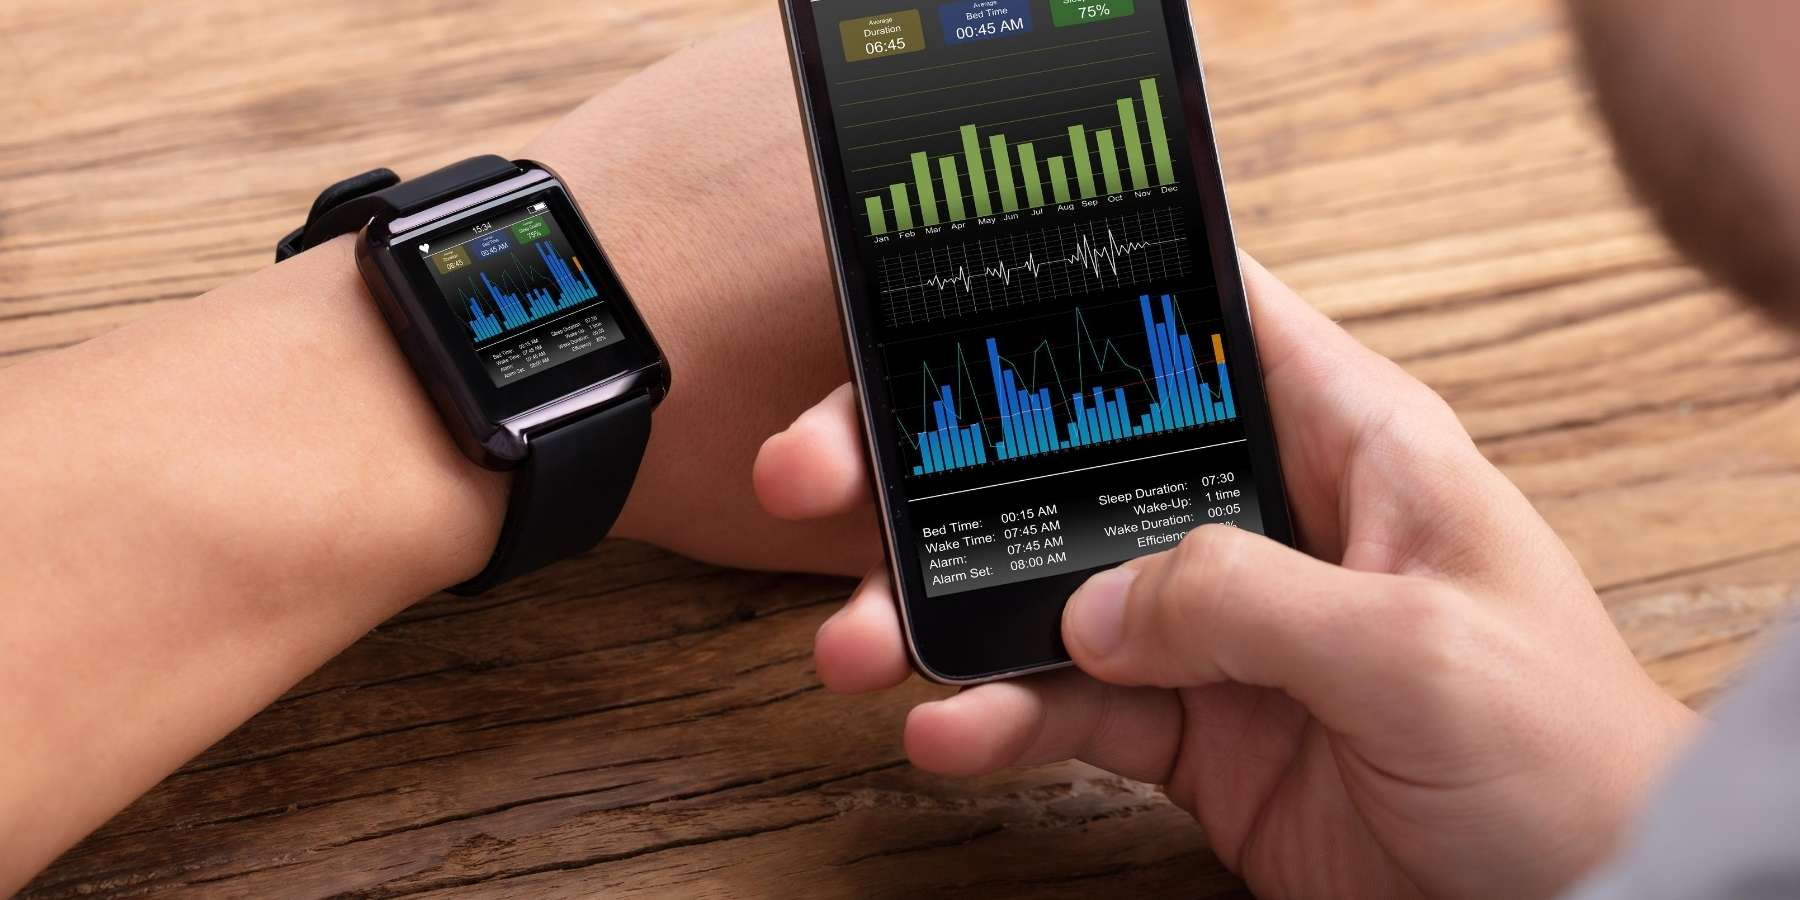 The 10 Best Pedometer Apps for Android in 2021